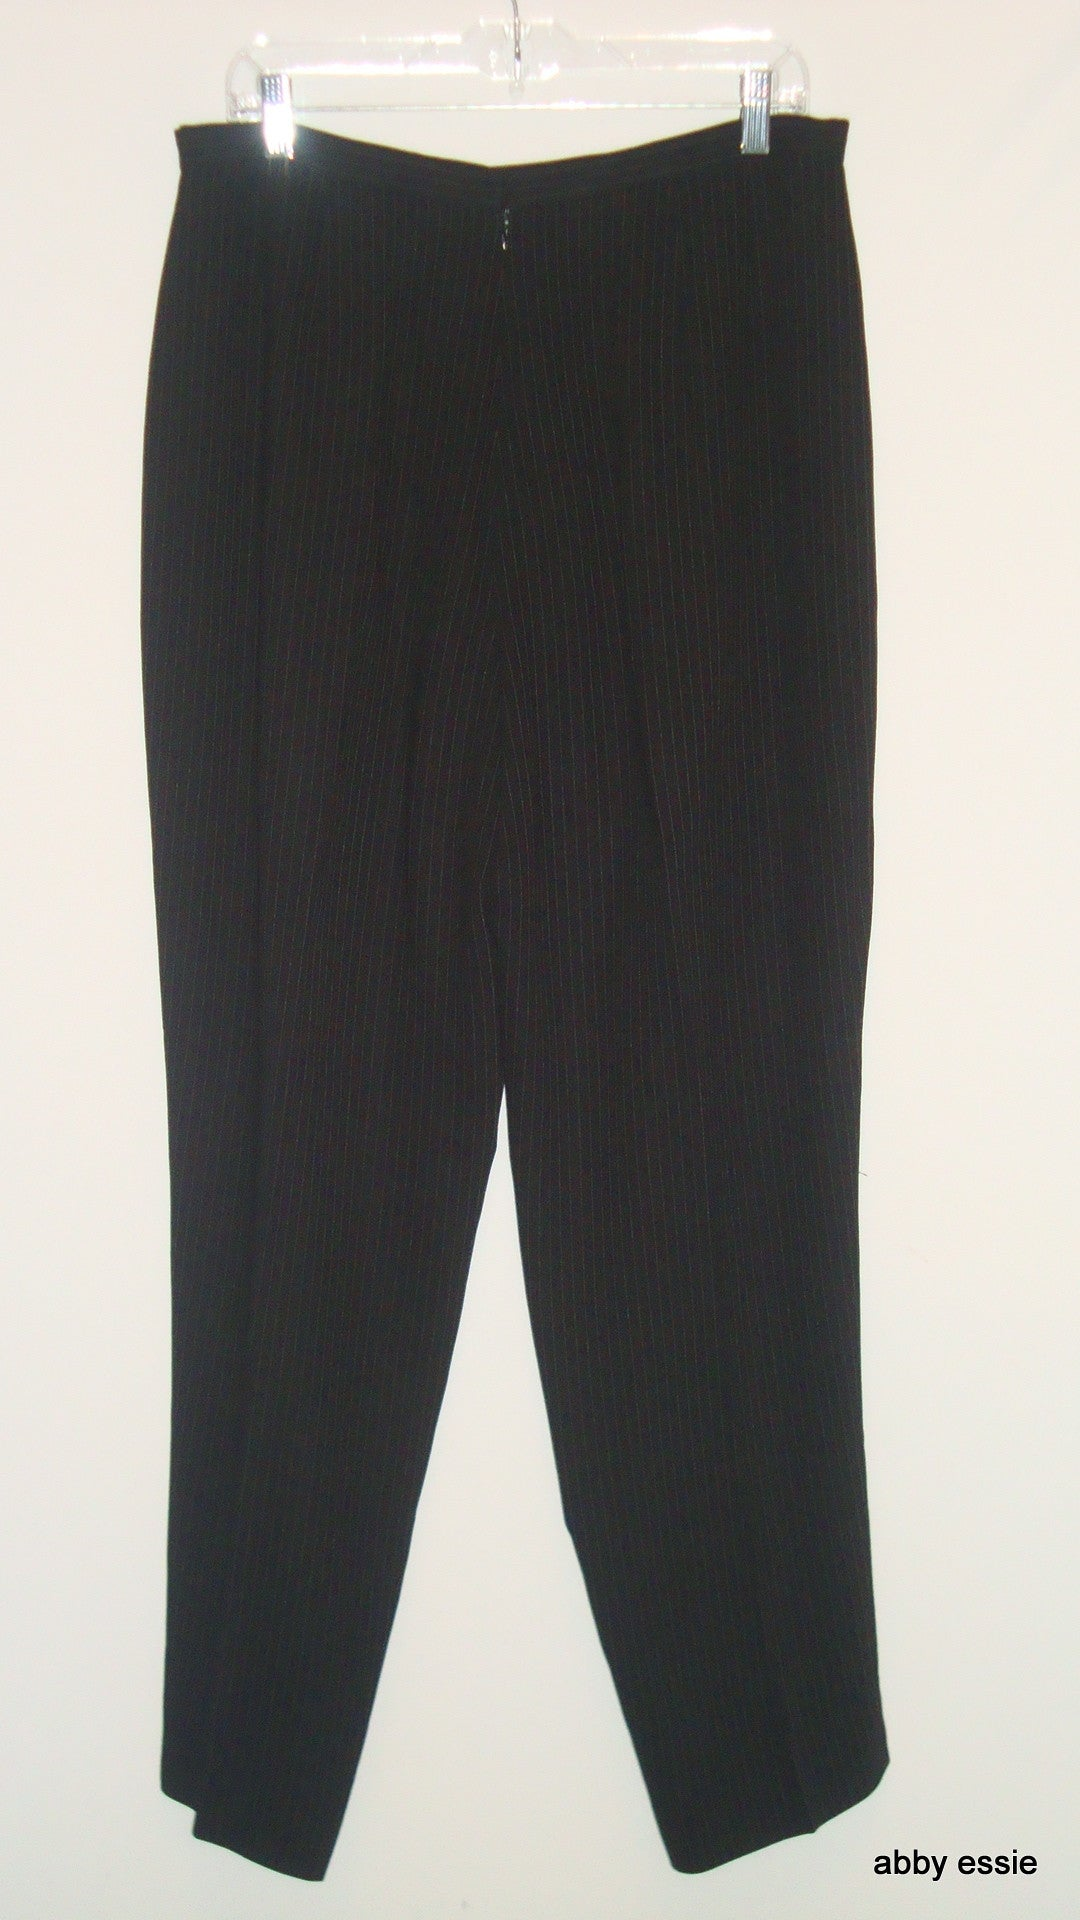 EMANUEL UNGARO BLACK WHITE PIN-STRIPED DRESS CAREER PANTS US 16 / EU 50